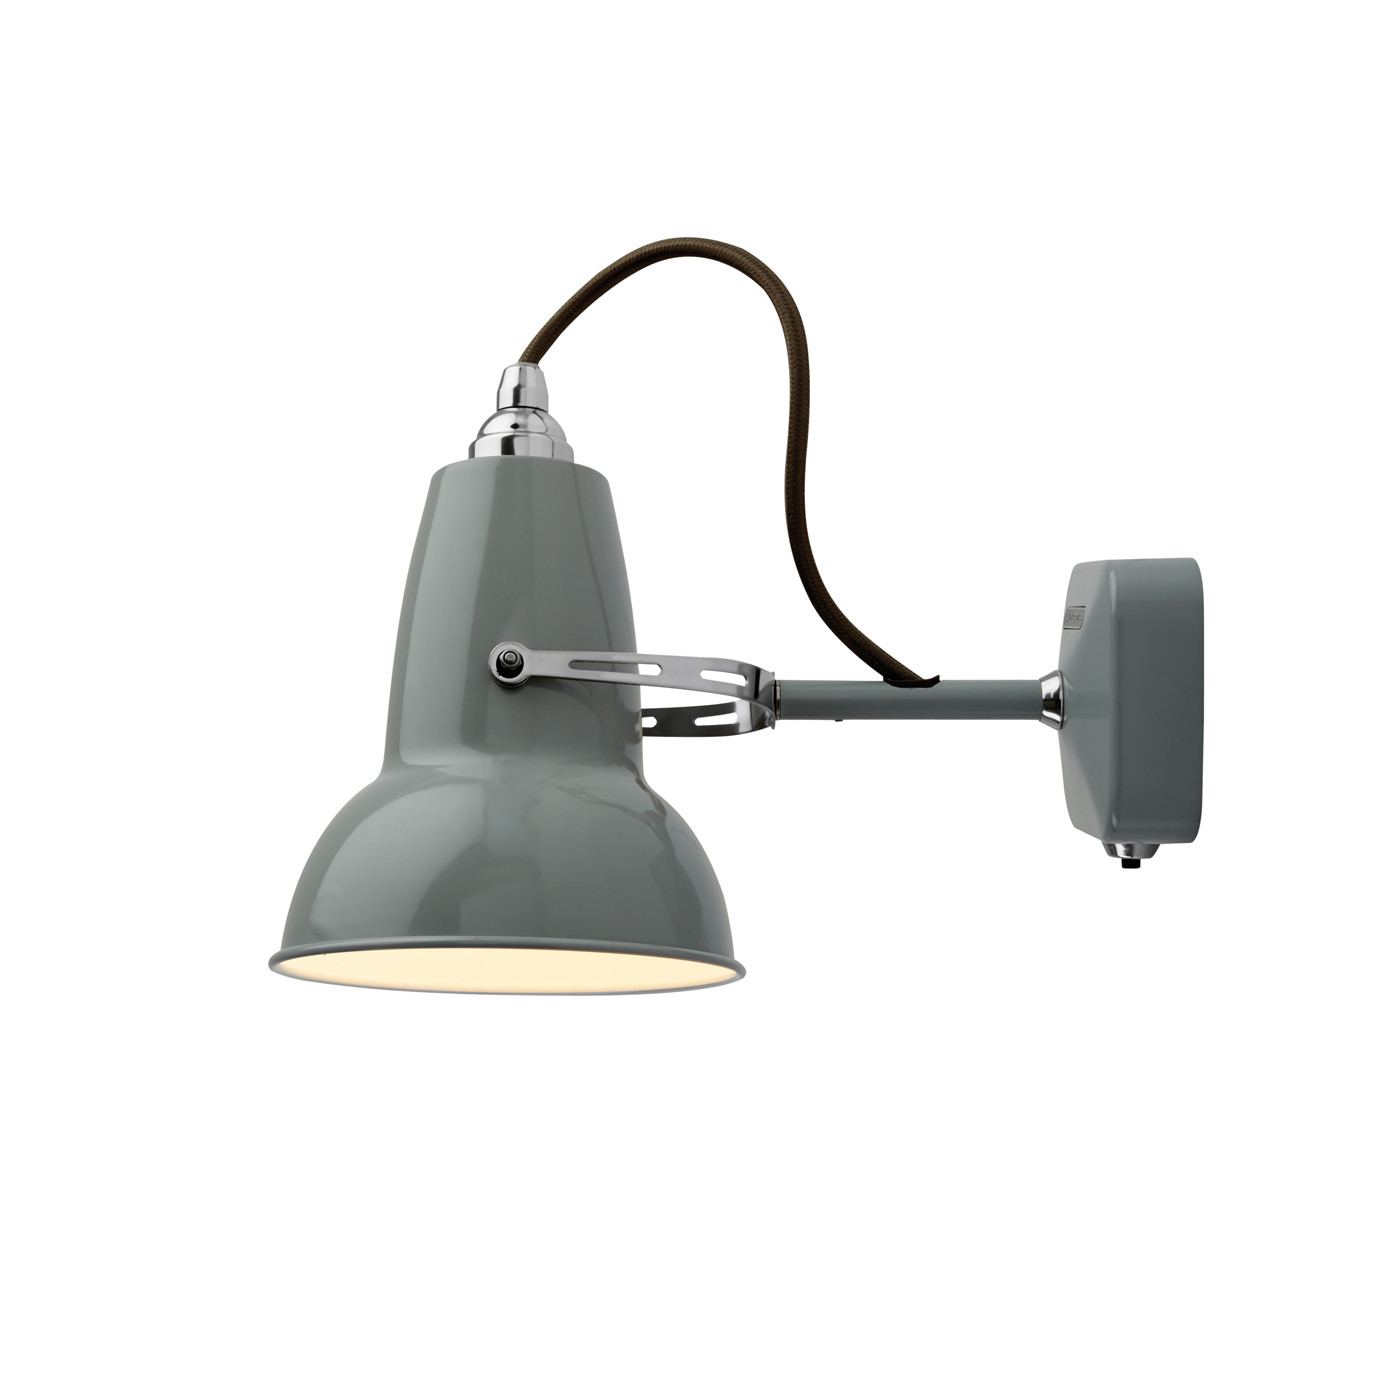 Anglepoise Original 1227 Mini Wall Lamp At Nostraforma